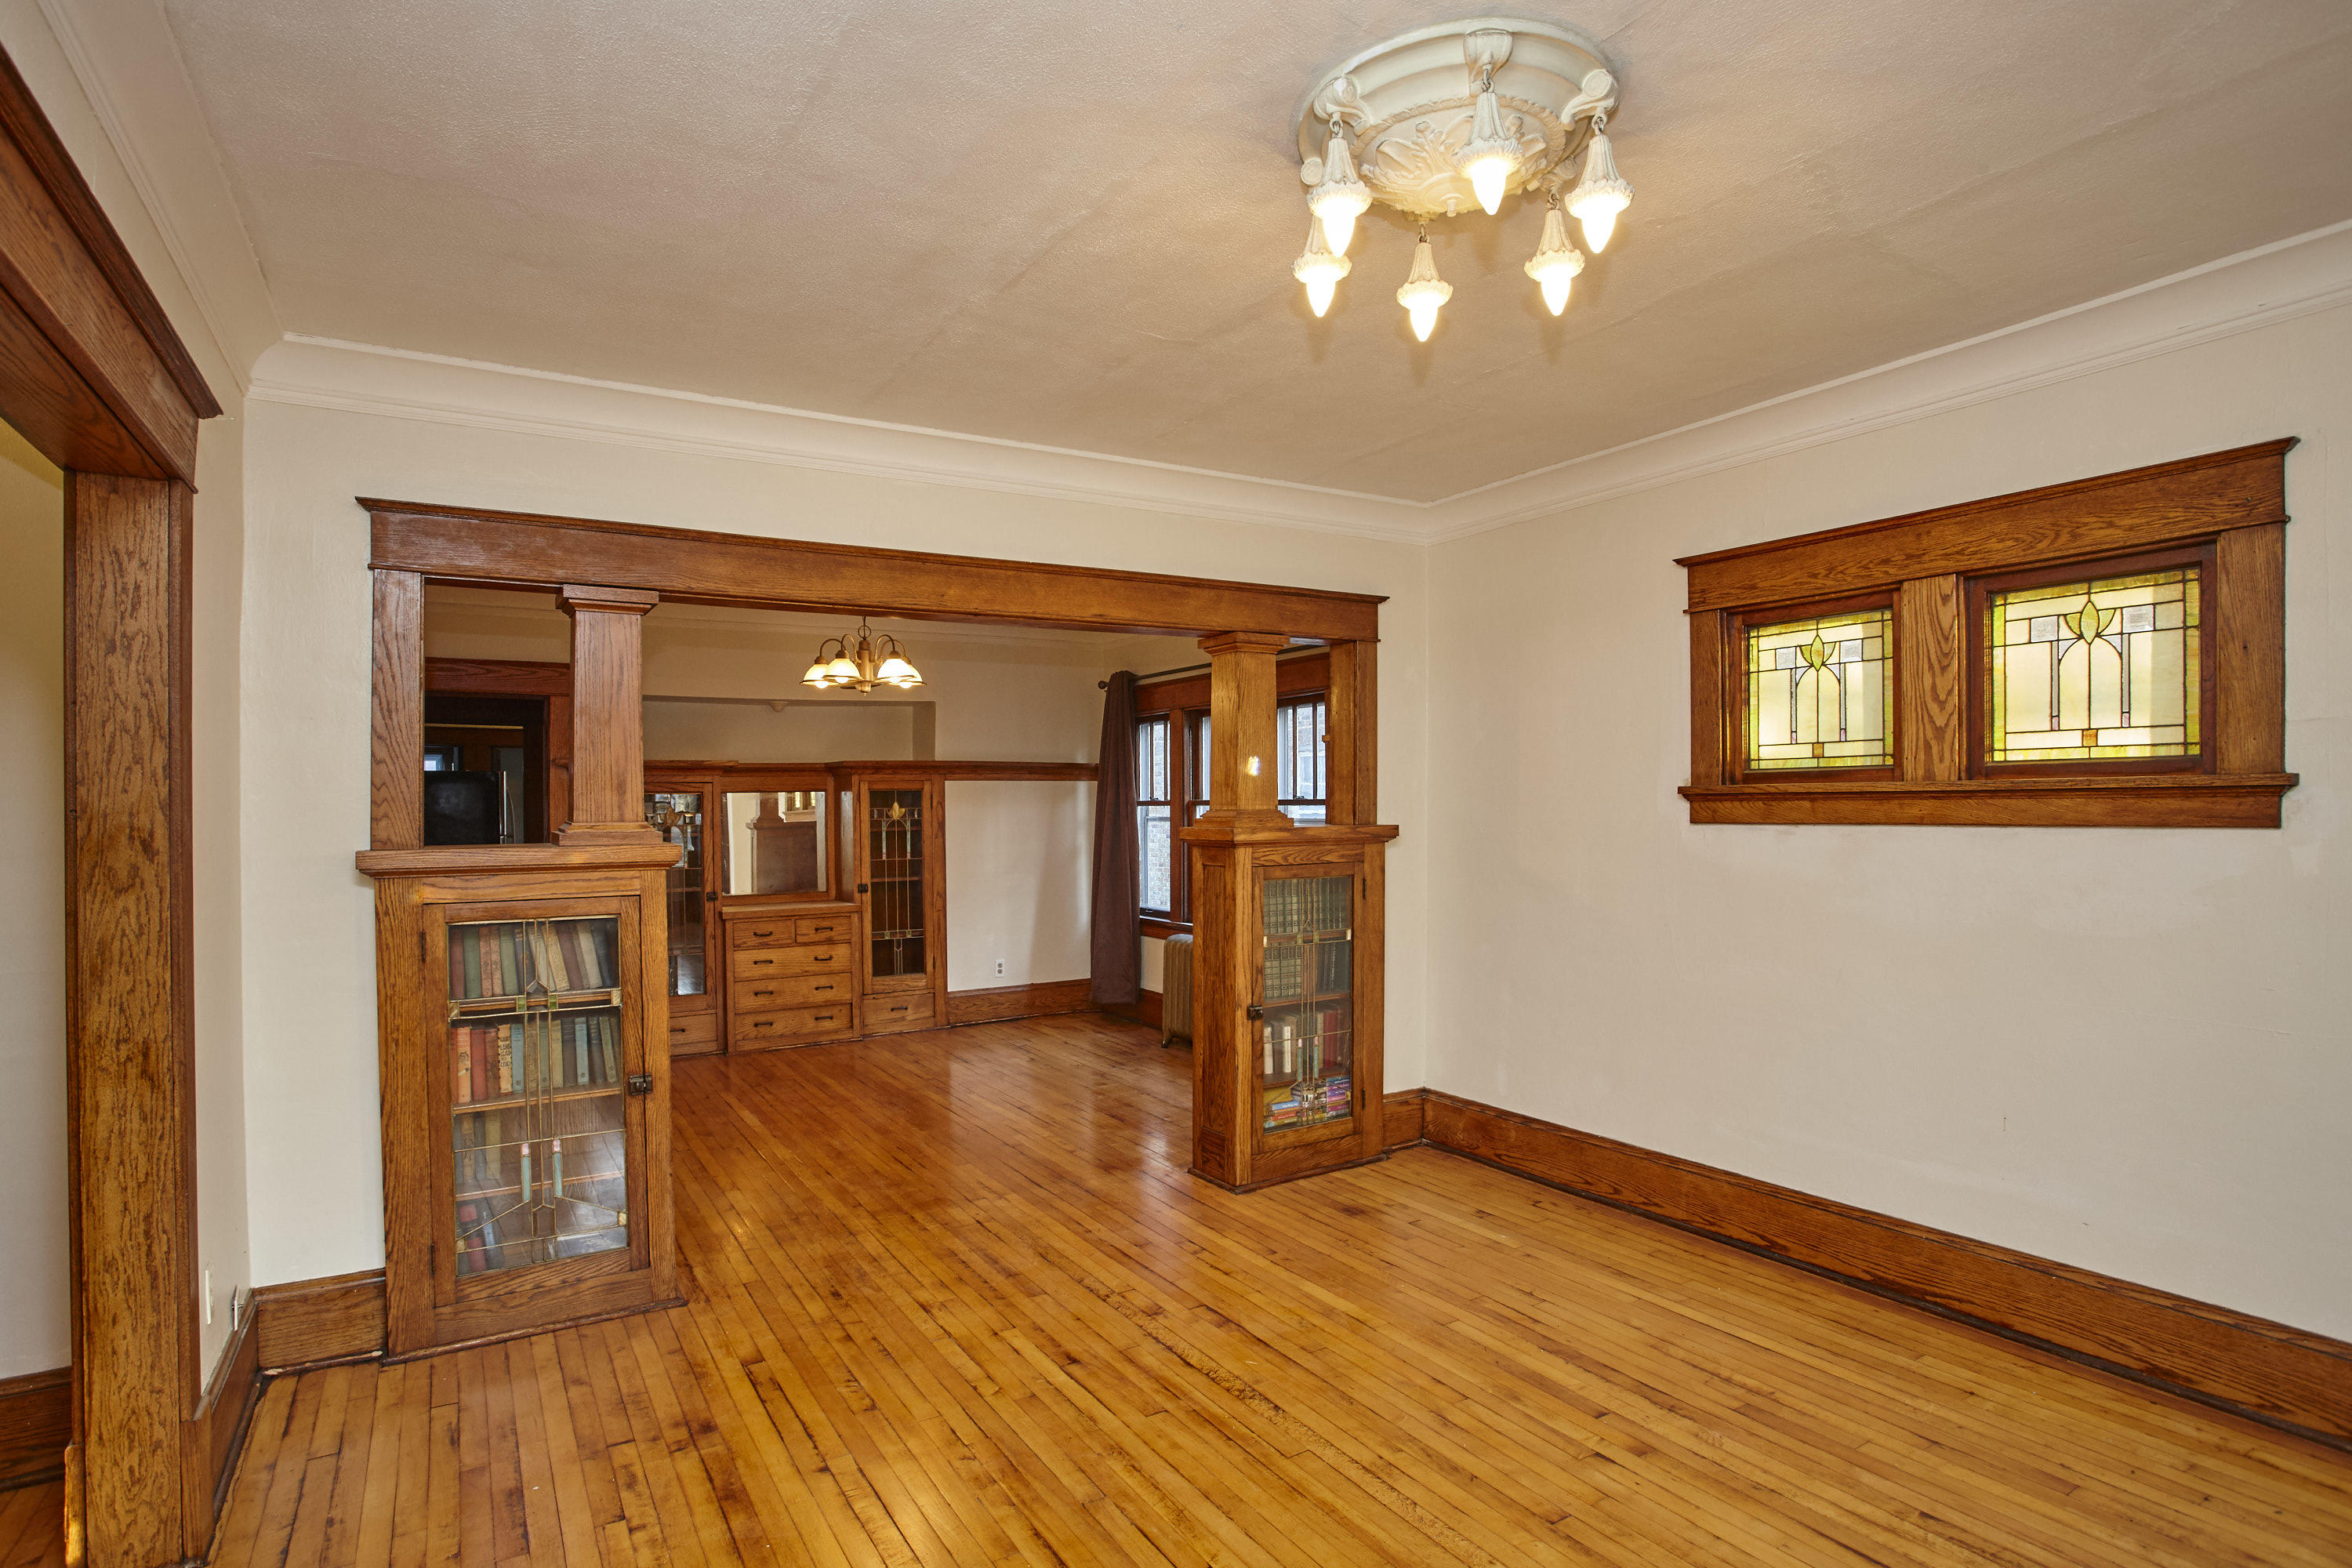 3054 Humboldt Blvd, Milwaukee, Wisconsin 53212, ,Two-family,For Sale,Humboldt Blvd,1721792